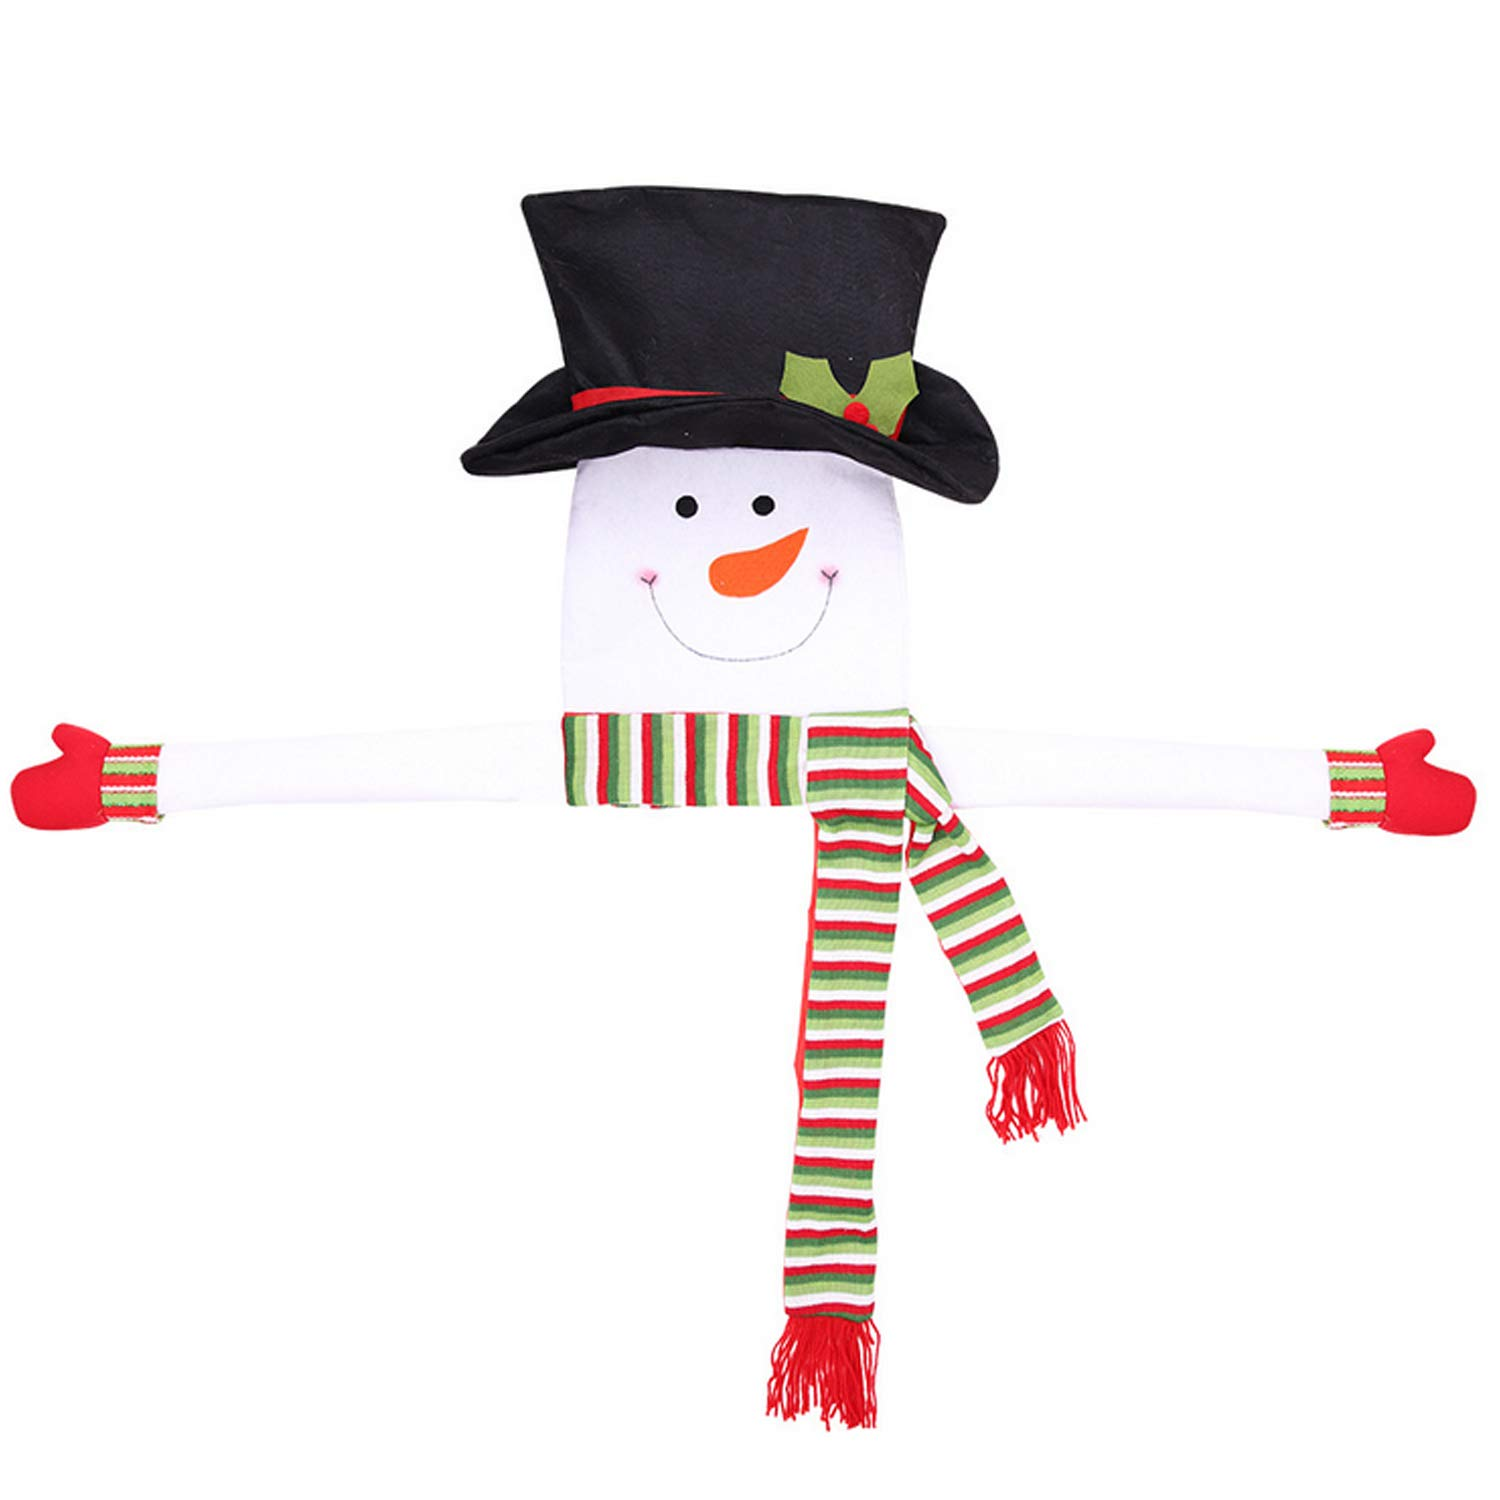 Cute Snowman Hat Hugger Christmas Tree Toppers Ornament Xmas Christmas Eve Home Decorations Party Supplies 52.36 x 45.28inch Gosear A